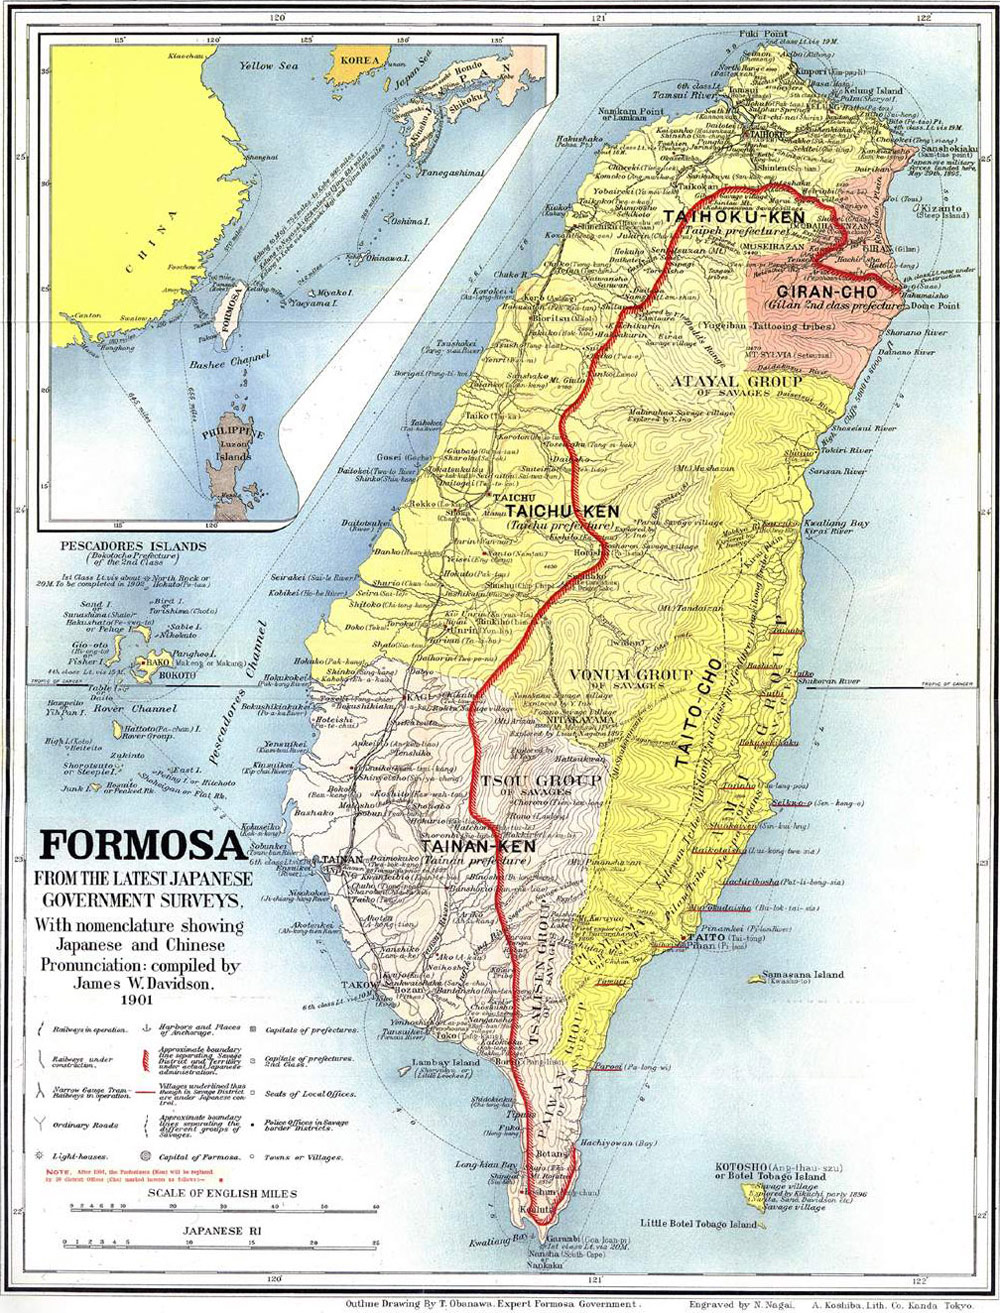 File Locator map of the ROC Taiwan furthermore D0 A2 D0 B0 D0 B9 D0 B2 D0 B0 D0 BD besides China E2 80 93Democratic Republic of the Congo relations also Wiki additionally Map Of Formosa 1901. on the locator map of taiwan roc